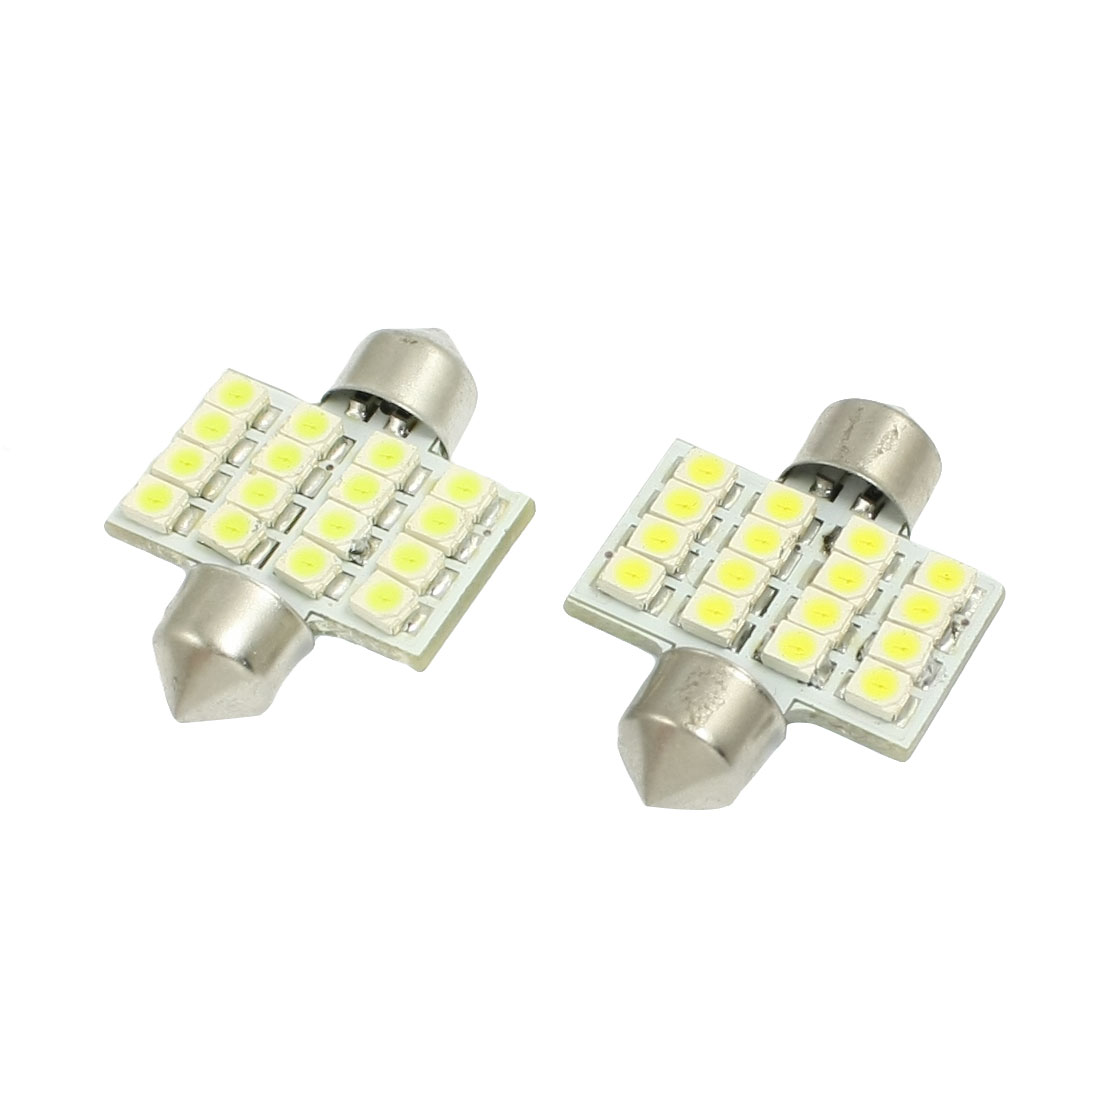 2 Pcs Car White 1210 3528 SMD 16-LED Festoon Dome Light Lamp DE3175 DE3021 Bulb 31mm